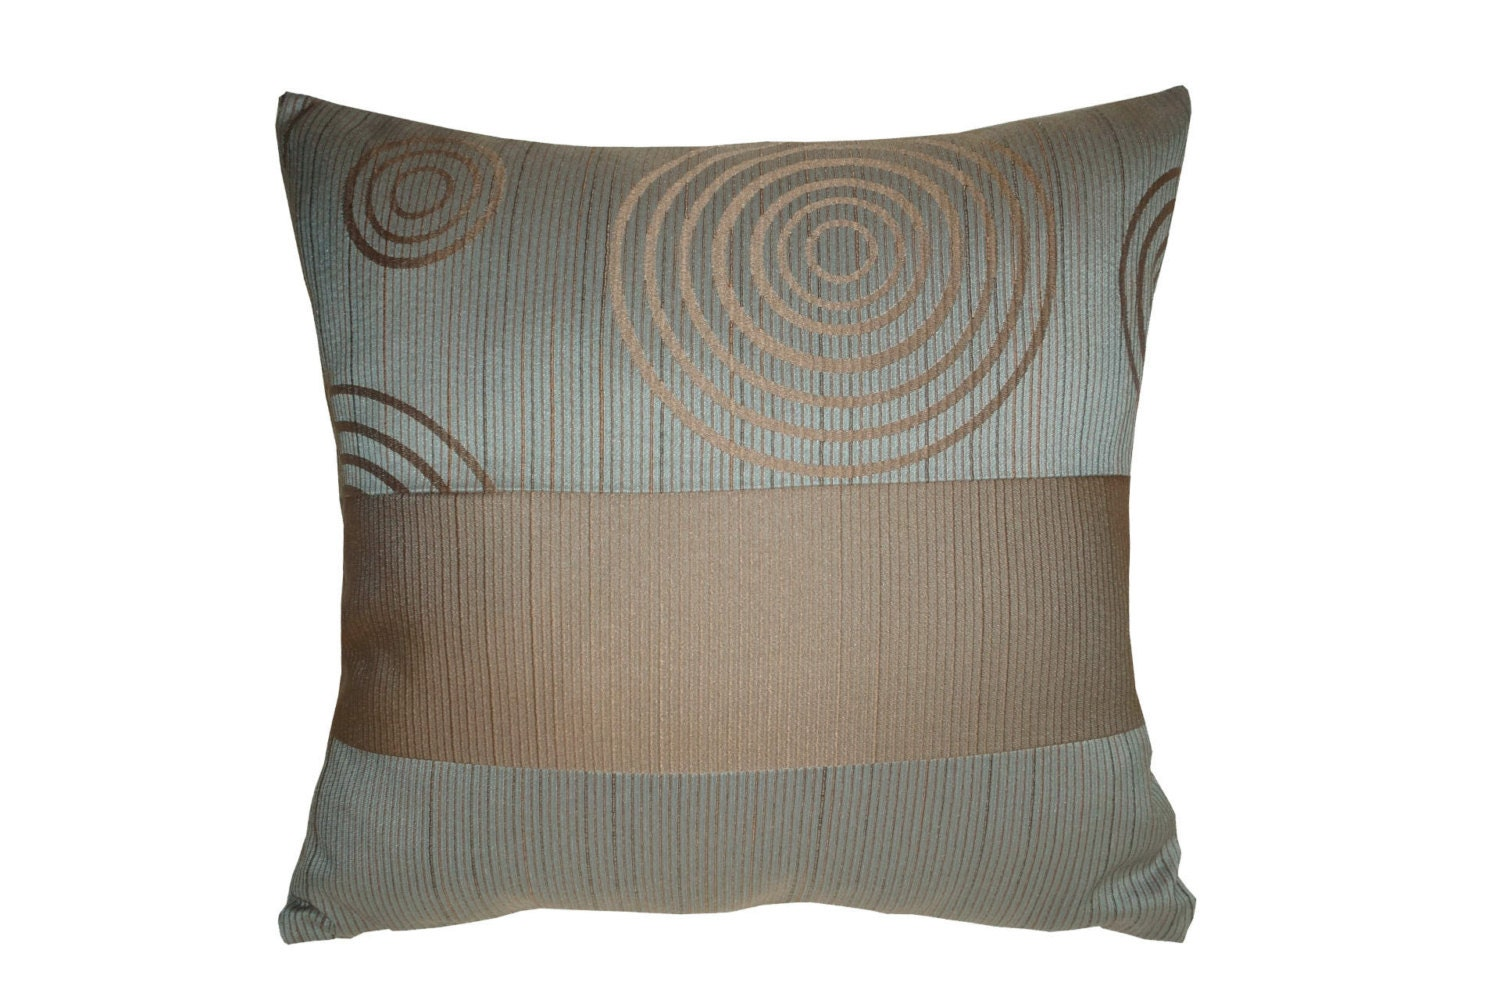 Steel Blue Throw Pillows : Brown circles Steel blue Stripe Decorative Throw Pillow